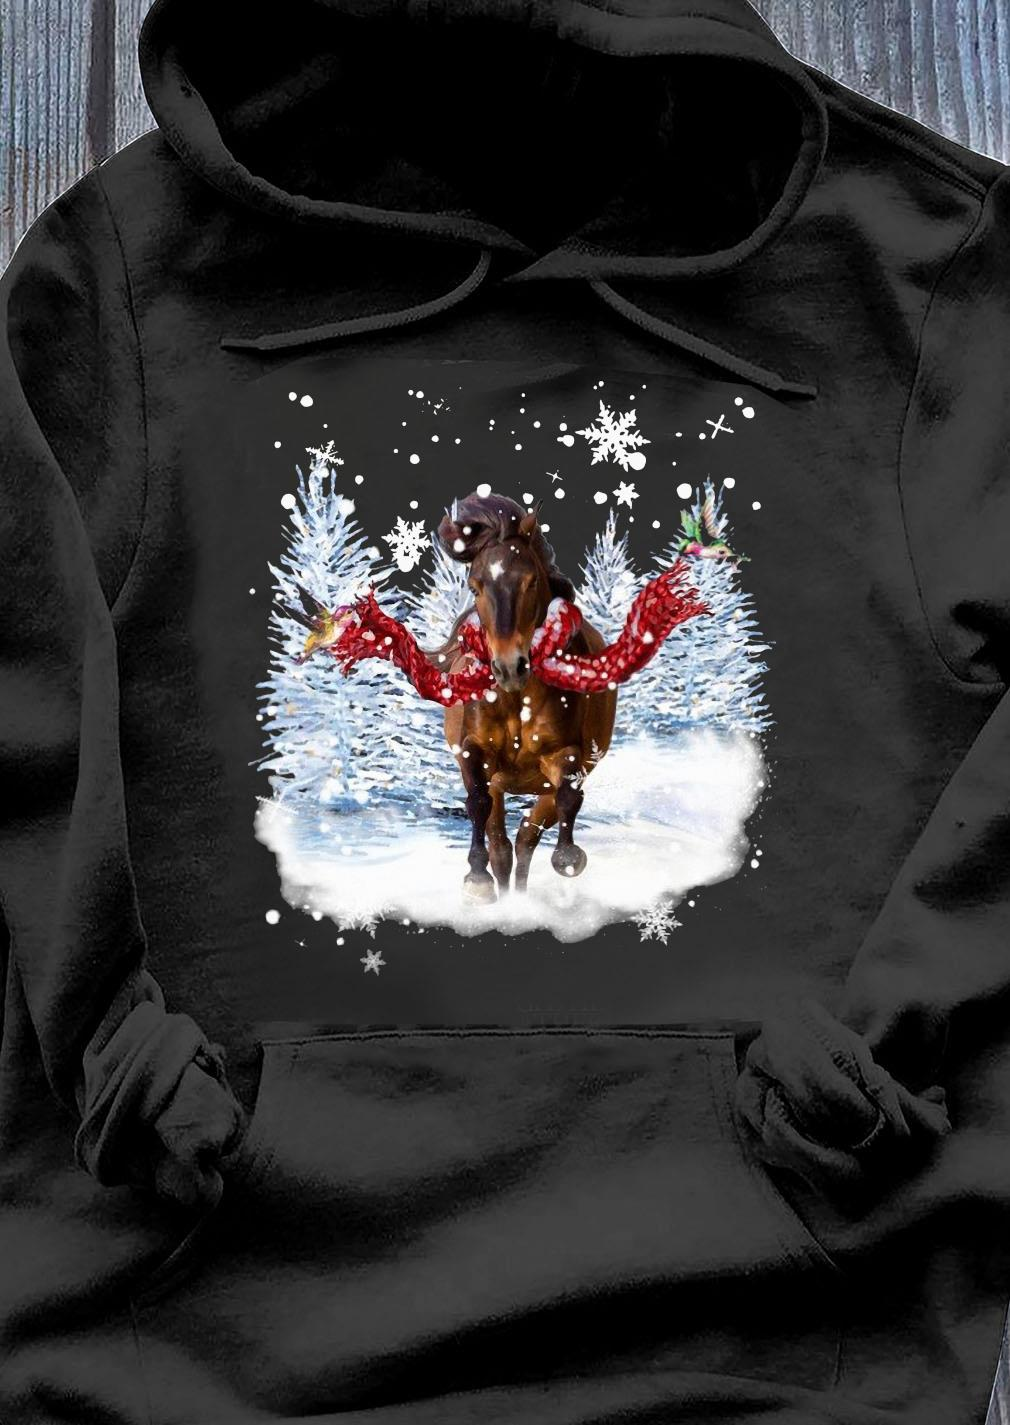 Horse Warm Red Scarf For Horse Lover Christmas Shirt Hoodie